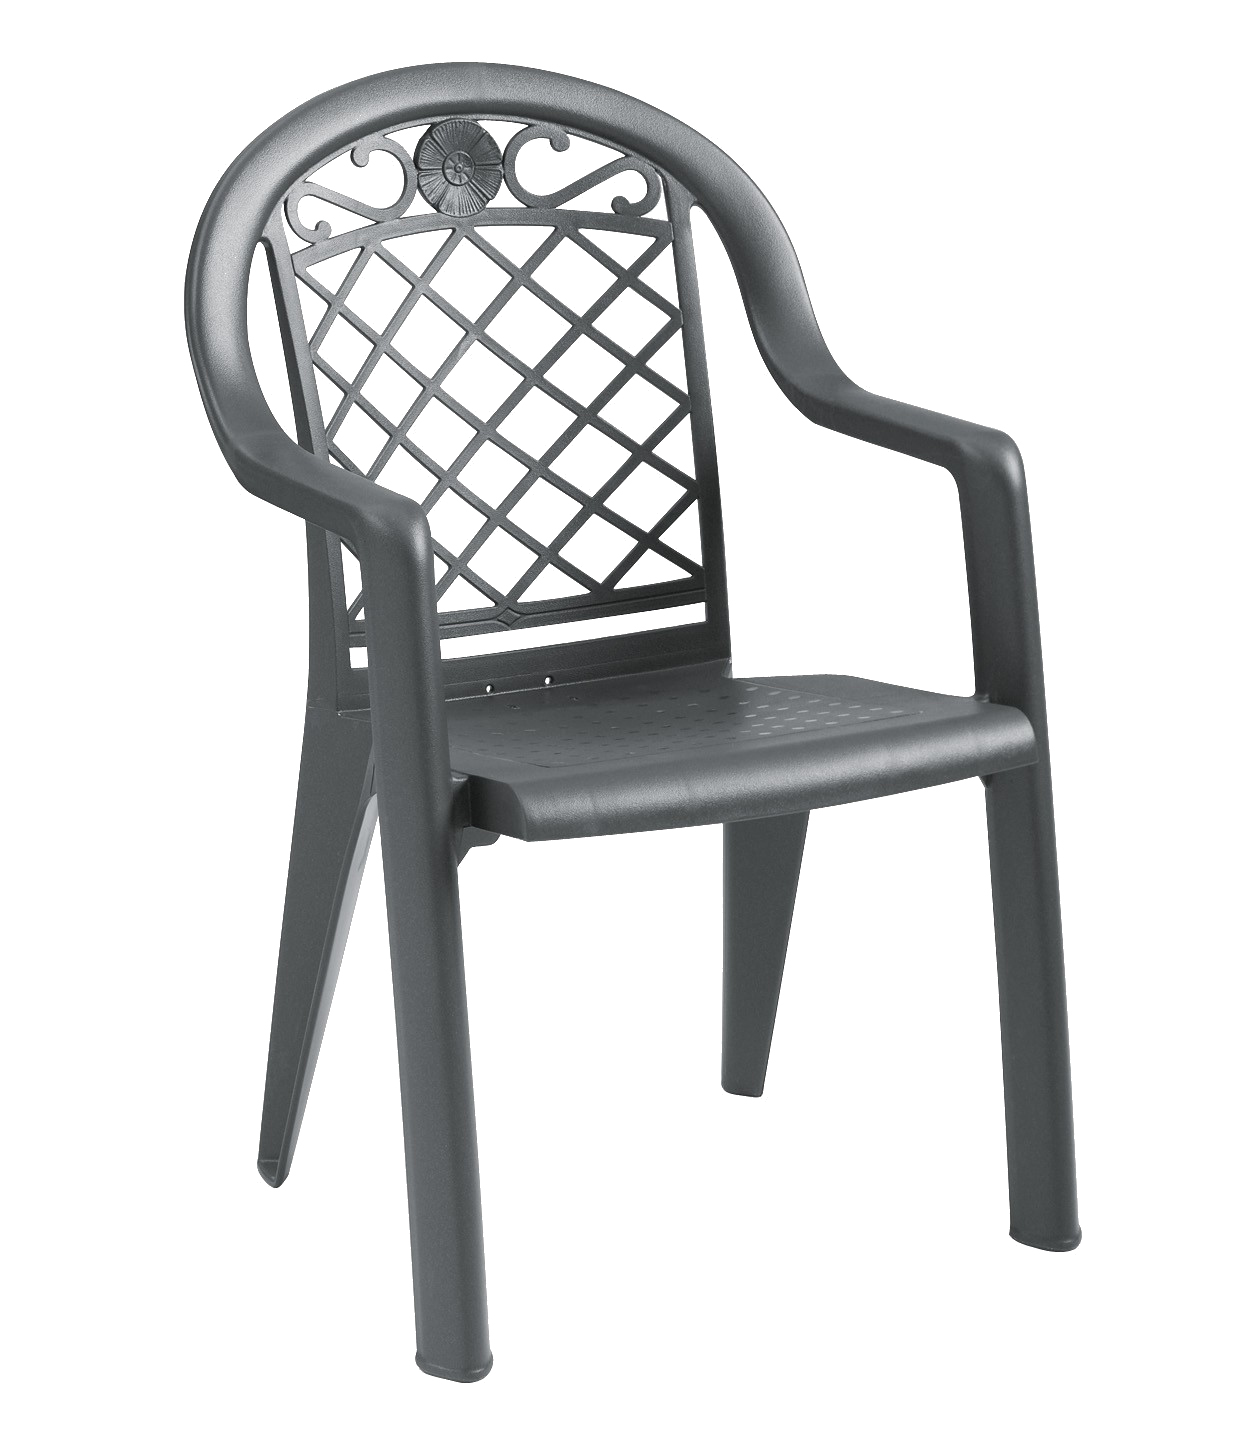 Grosfillex US413102 chair, armchair, stacking, outdoor